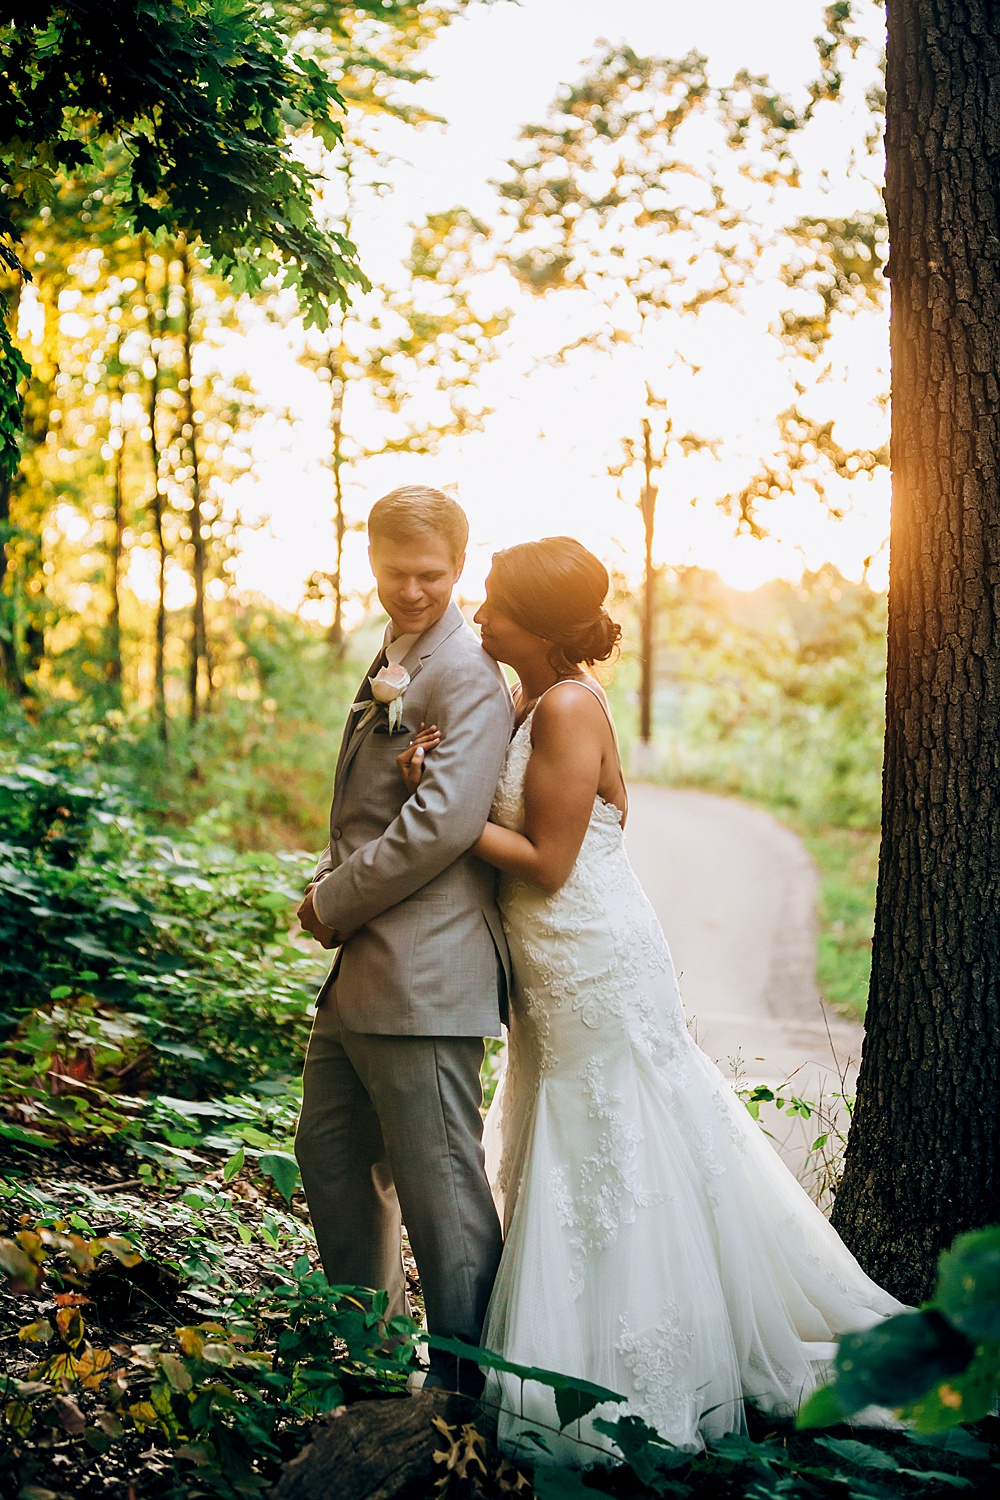 Bissell_Treehouse_Wedding_photography141.jpg